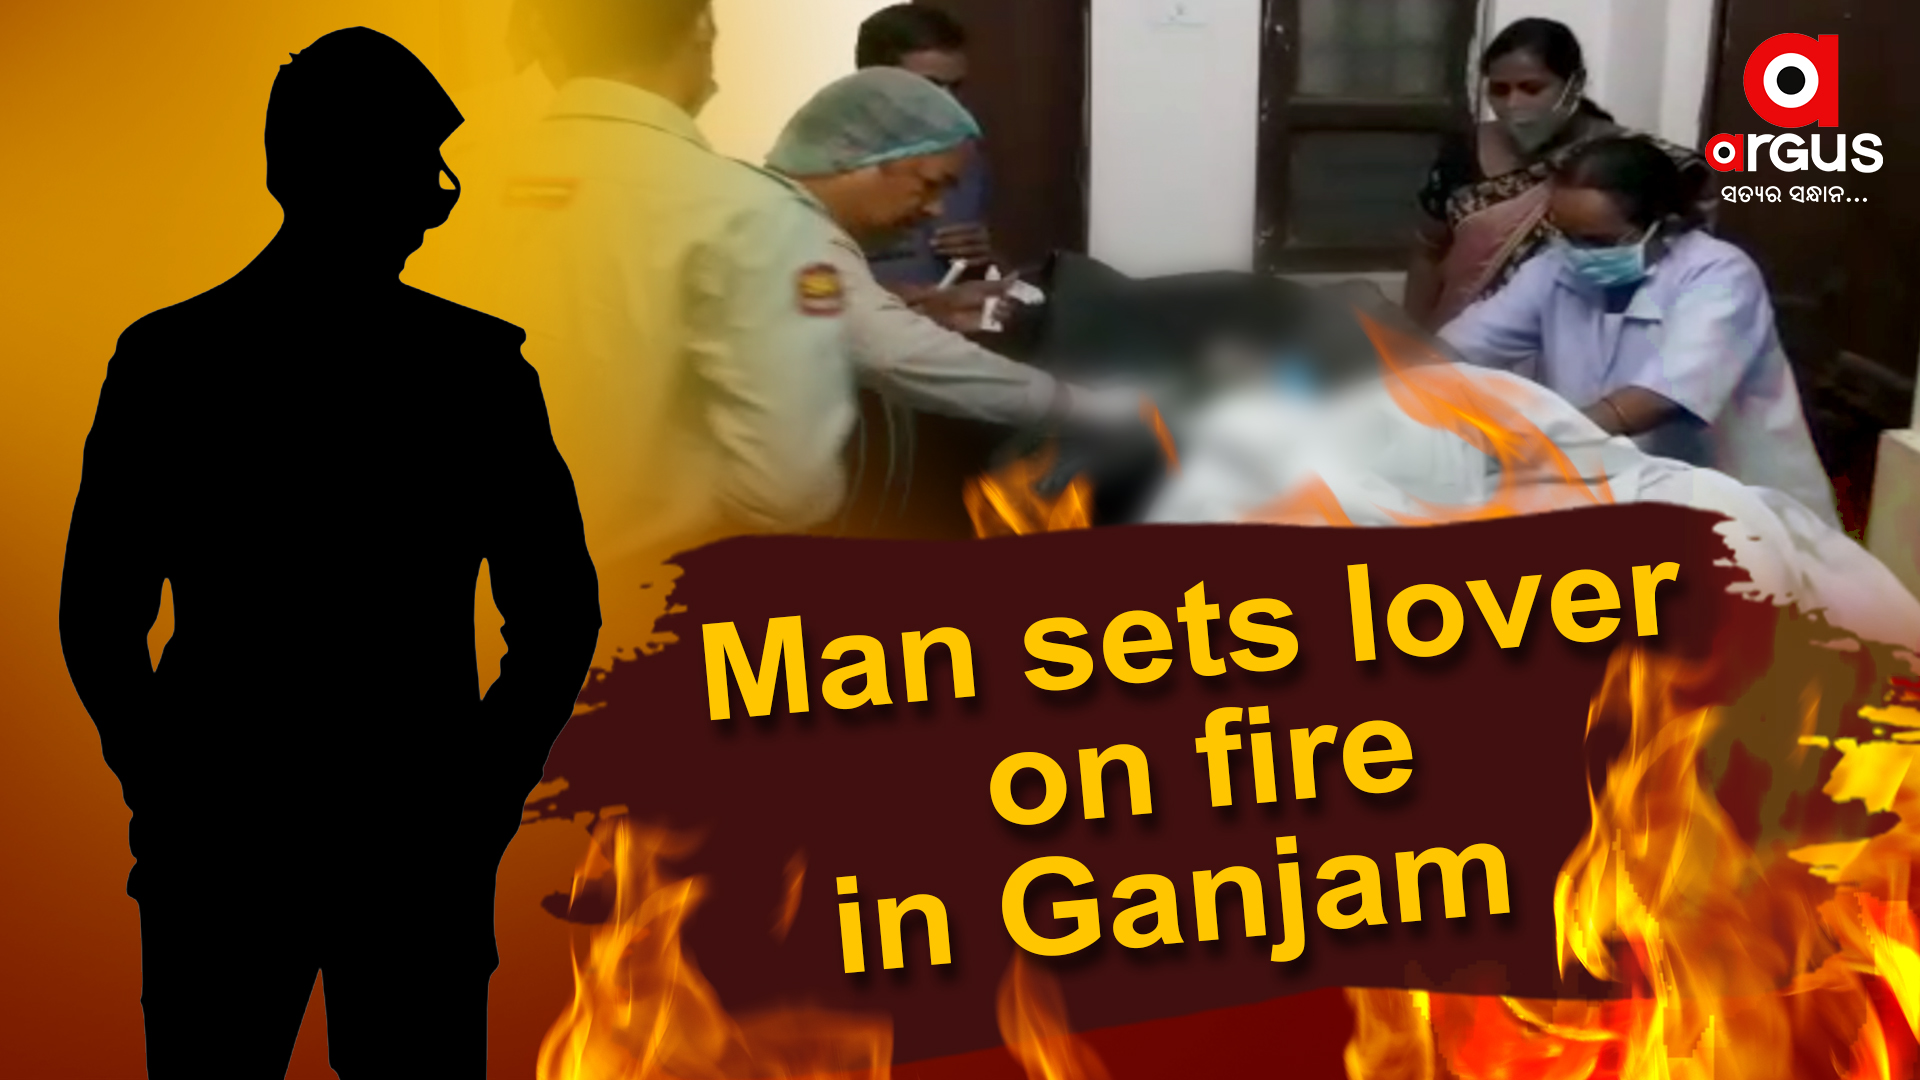 Odisha man sets lover on fire after she insists on marriage